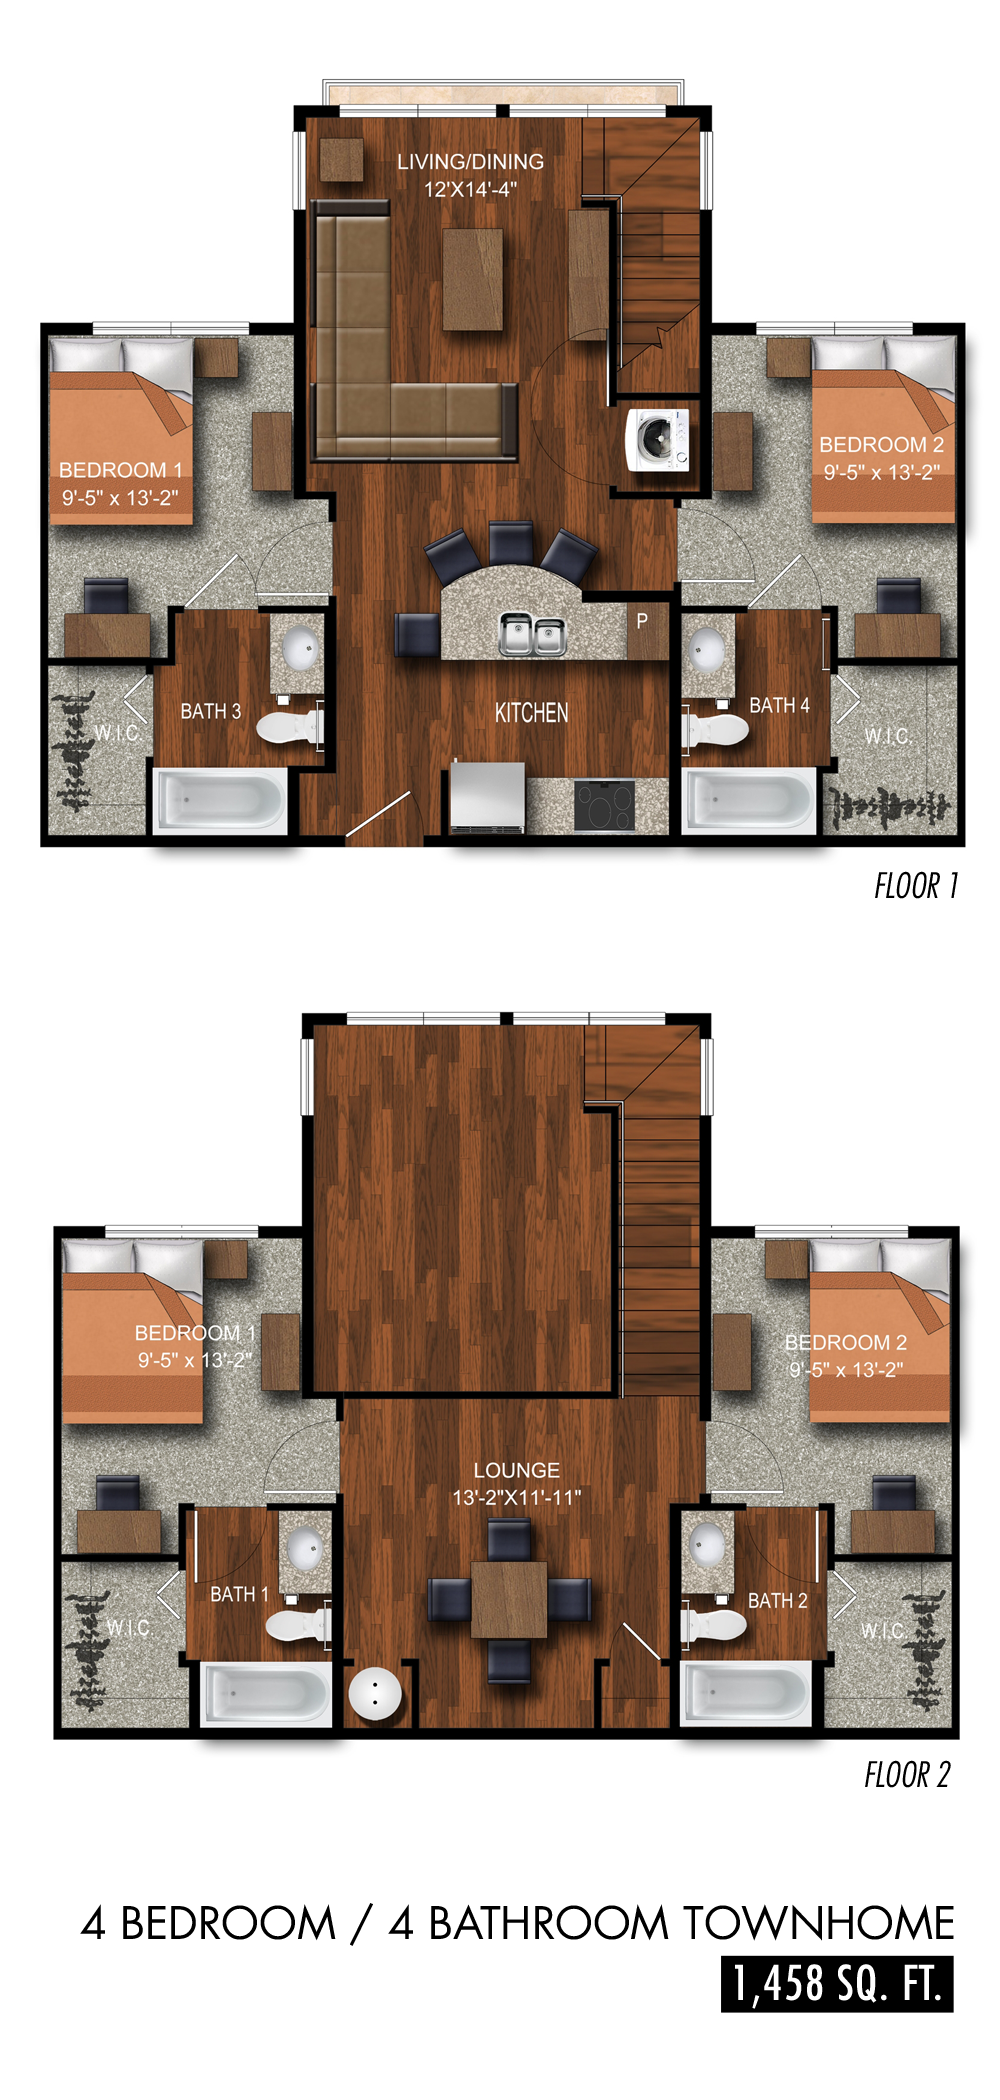 The Lofts at City Center. Tuscaloosa Apartments. | Our Tuscaloosa ...